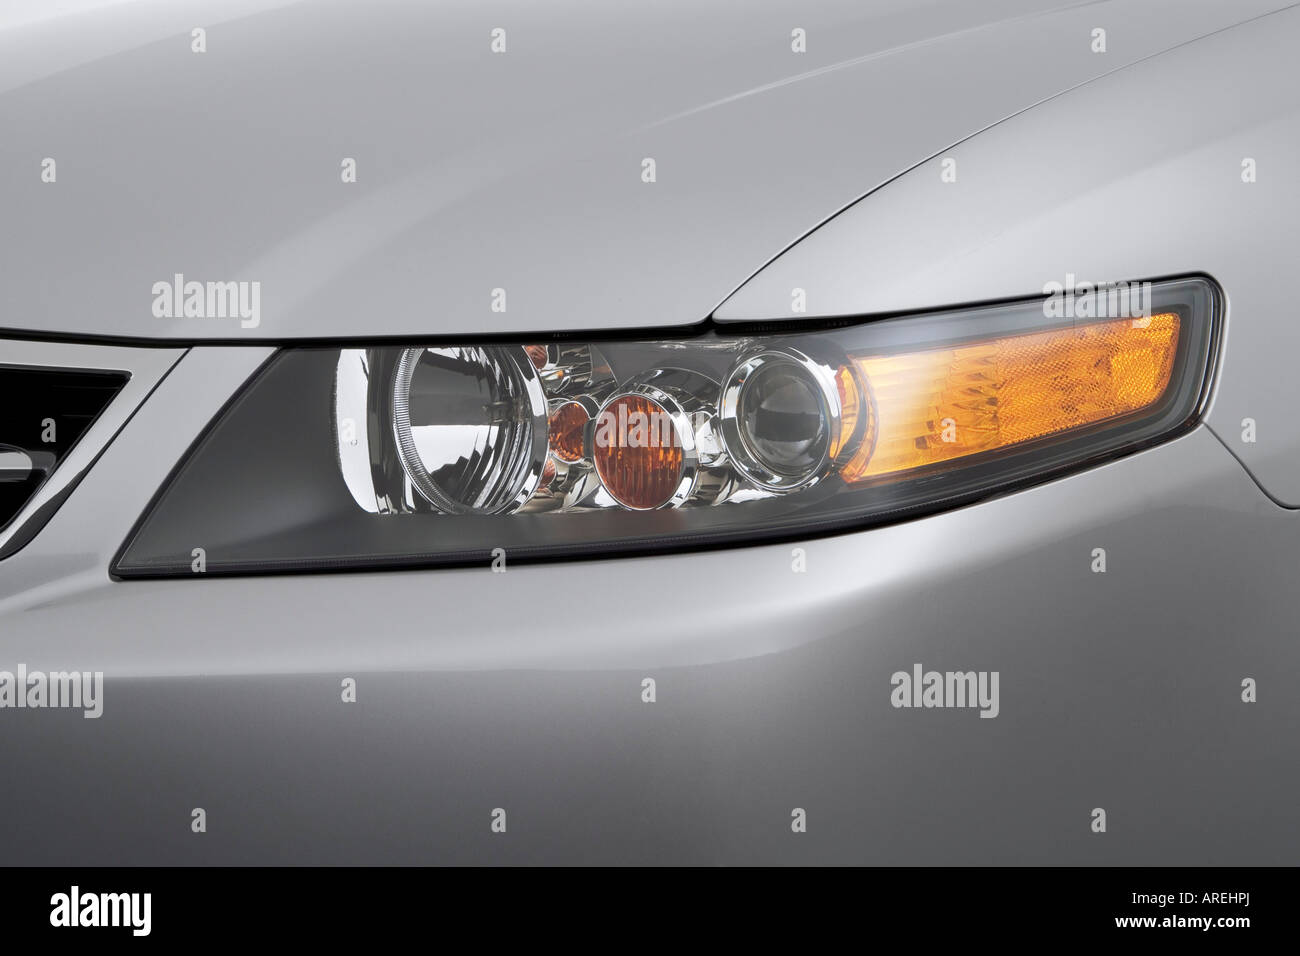 Acura Tsx In Silver Stock Photos Acura Tsx In Silver - 2006 acura tsx headlights